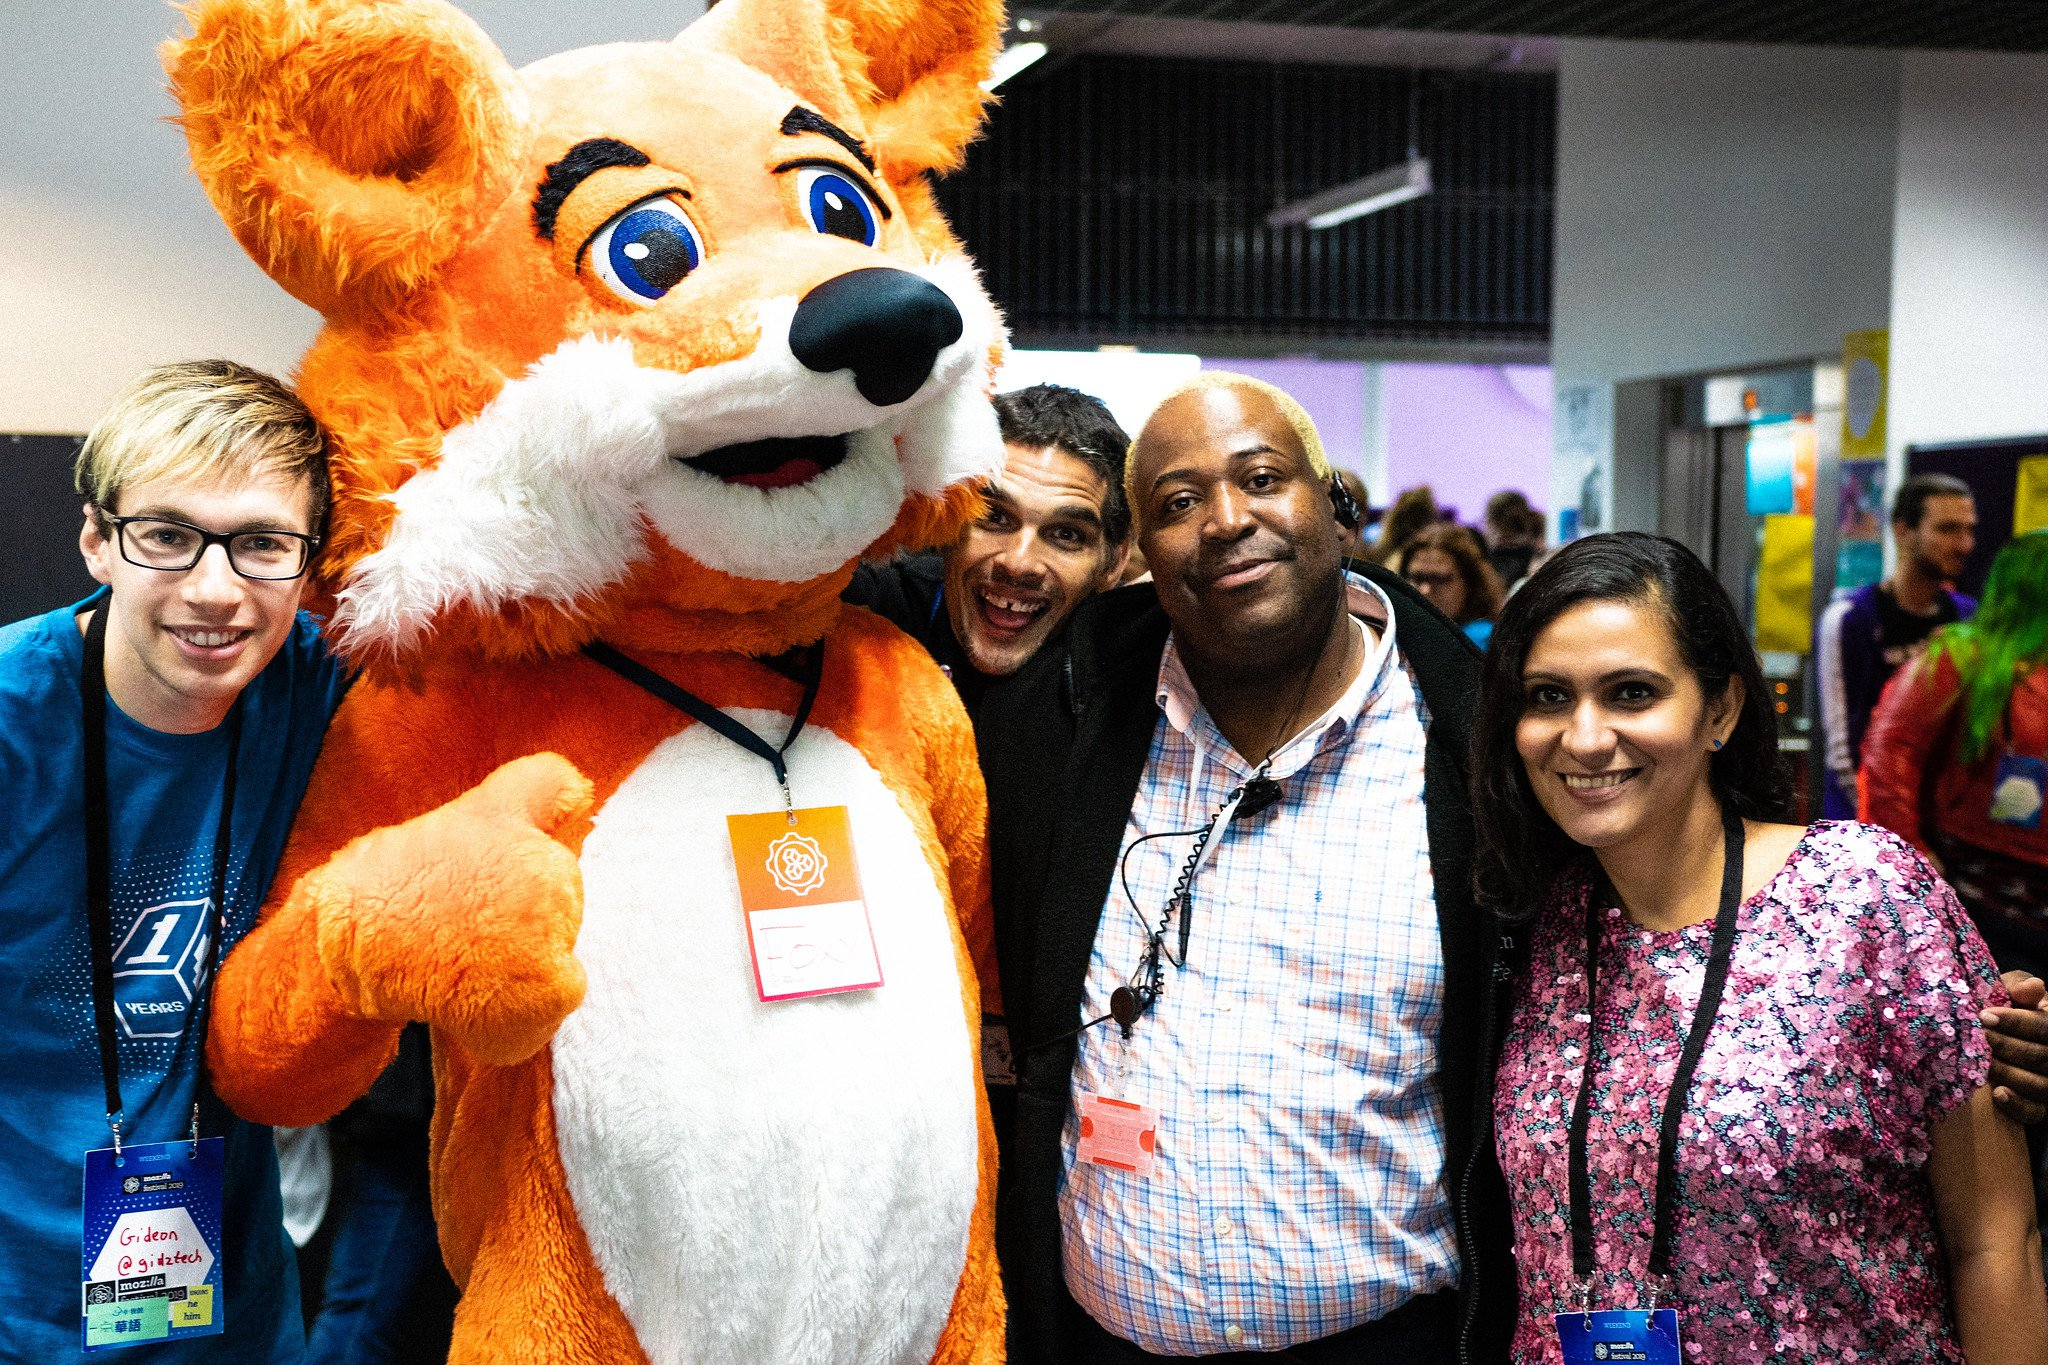 A small diverse group of people, including a person in a blue shirt (far left), a person with dark hair, a person wearing a dress shirt with a black sweater, and person with long, dark hair and a floral shirt (far right) standing together alongside a person in the Firefox mascot costume smiling at the camera at MozFest.